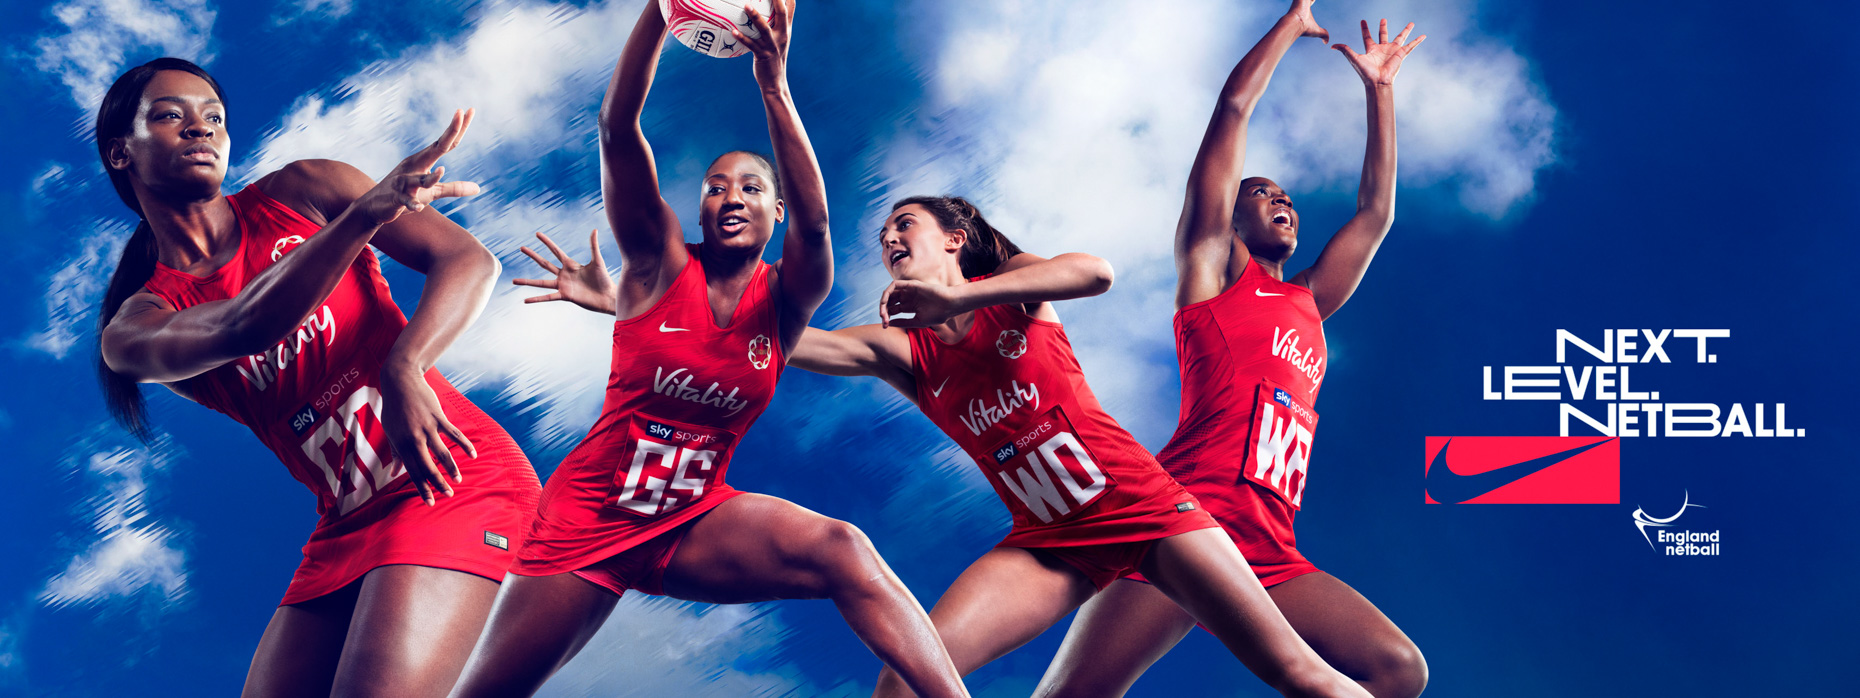 HO18_NWMN_WE_NIKExENGLANDNETBALL_GROUP_CLEAN_hires_layered